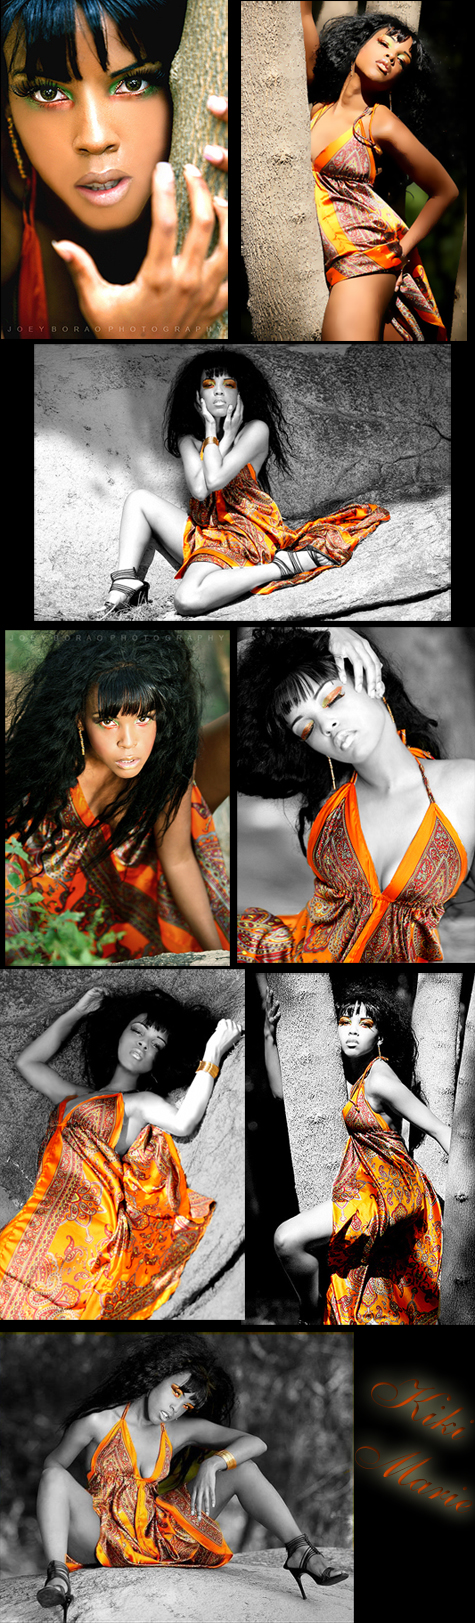 Dec 24, 2007 retouch me (except 1st pic 2nd row) (RETOUCH PG 477077)  AFRICA SERIES